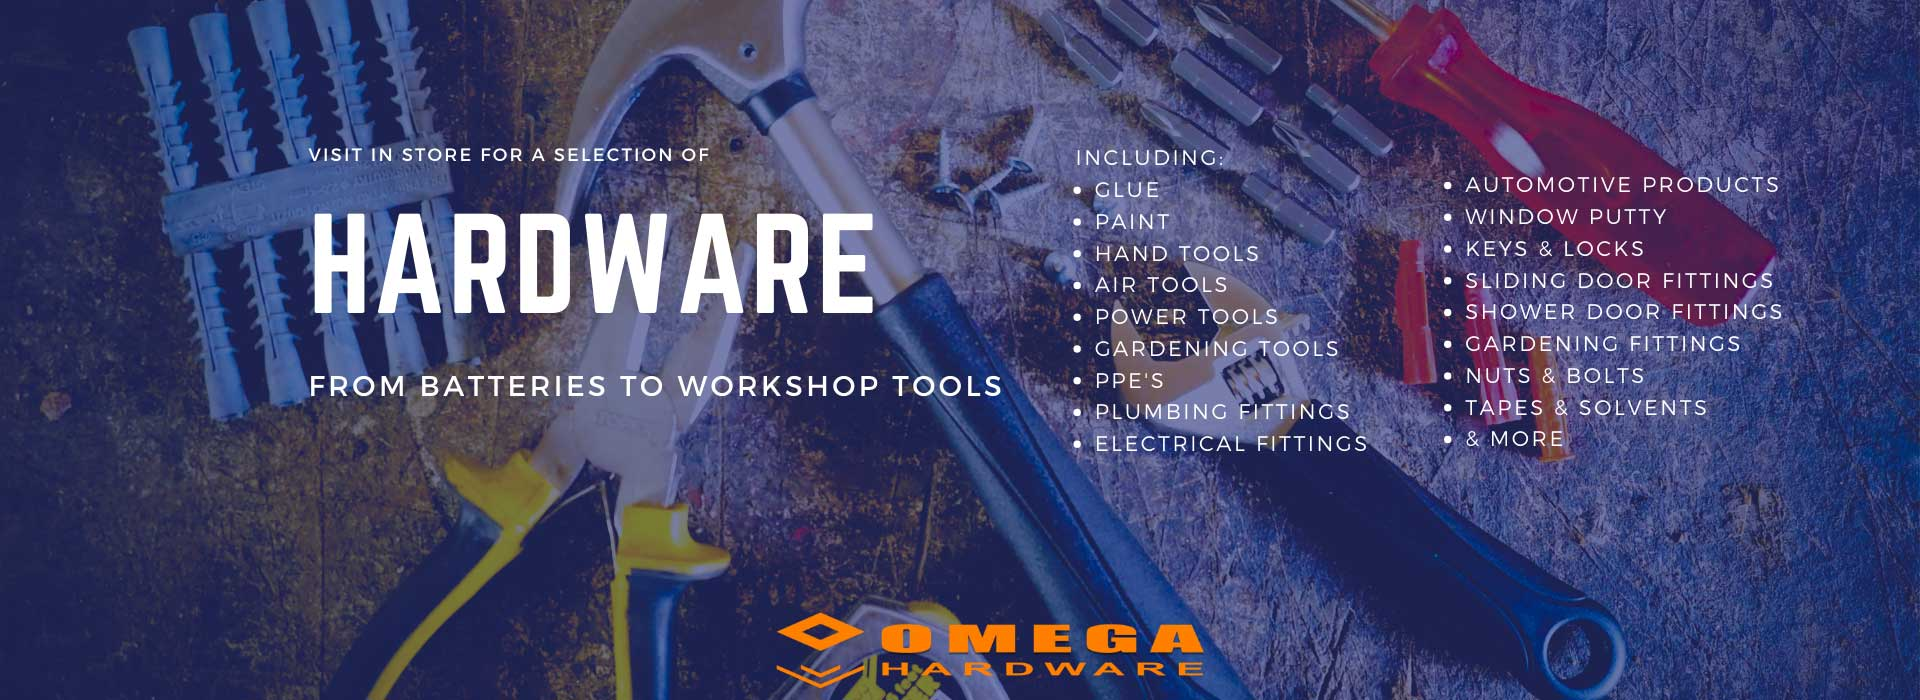 local hardware store, Gansbaai hardware stores, hardware store Overberg, tool supplier, toolboxes and tools, DIY equipment, Omega Gansbaai, Omega Hardware